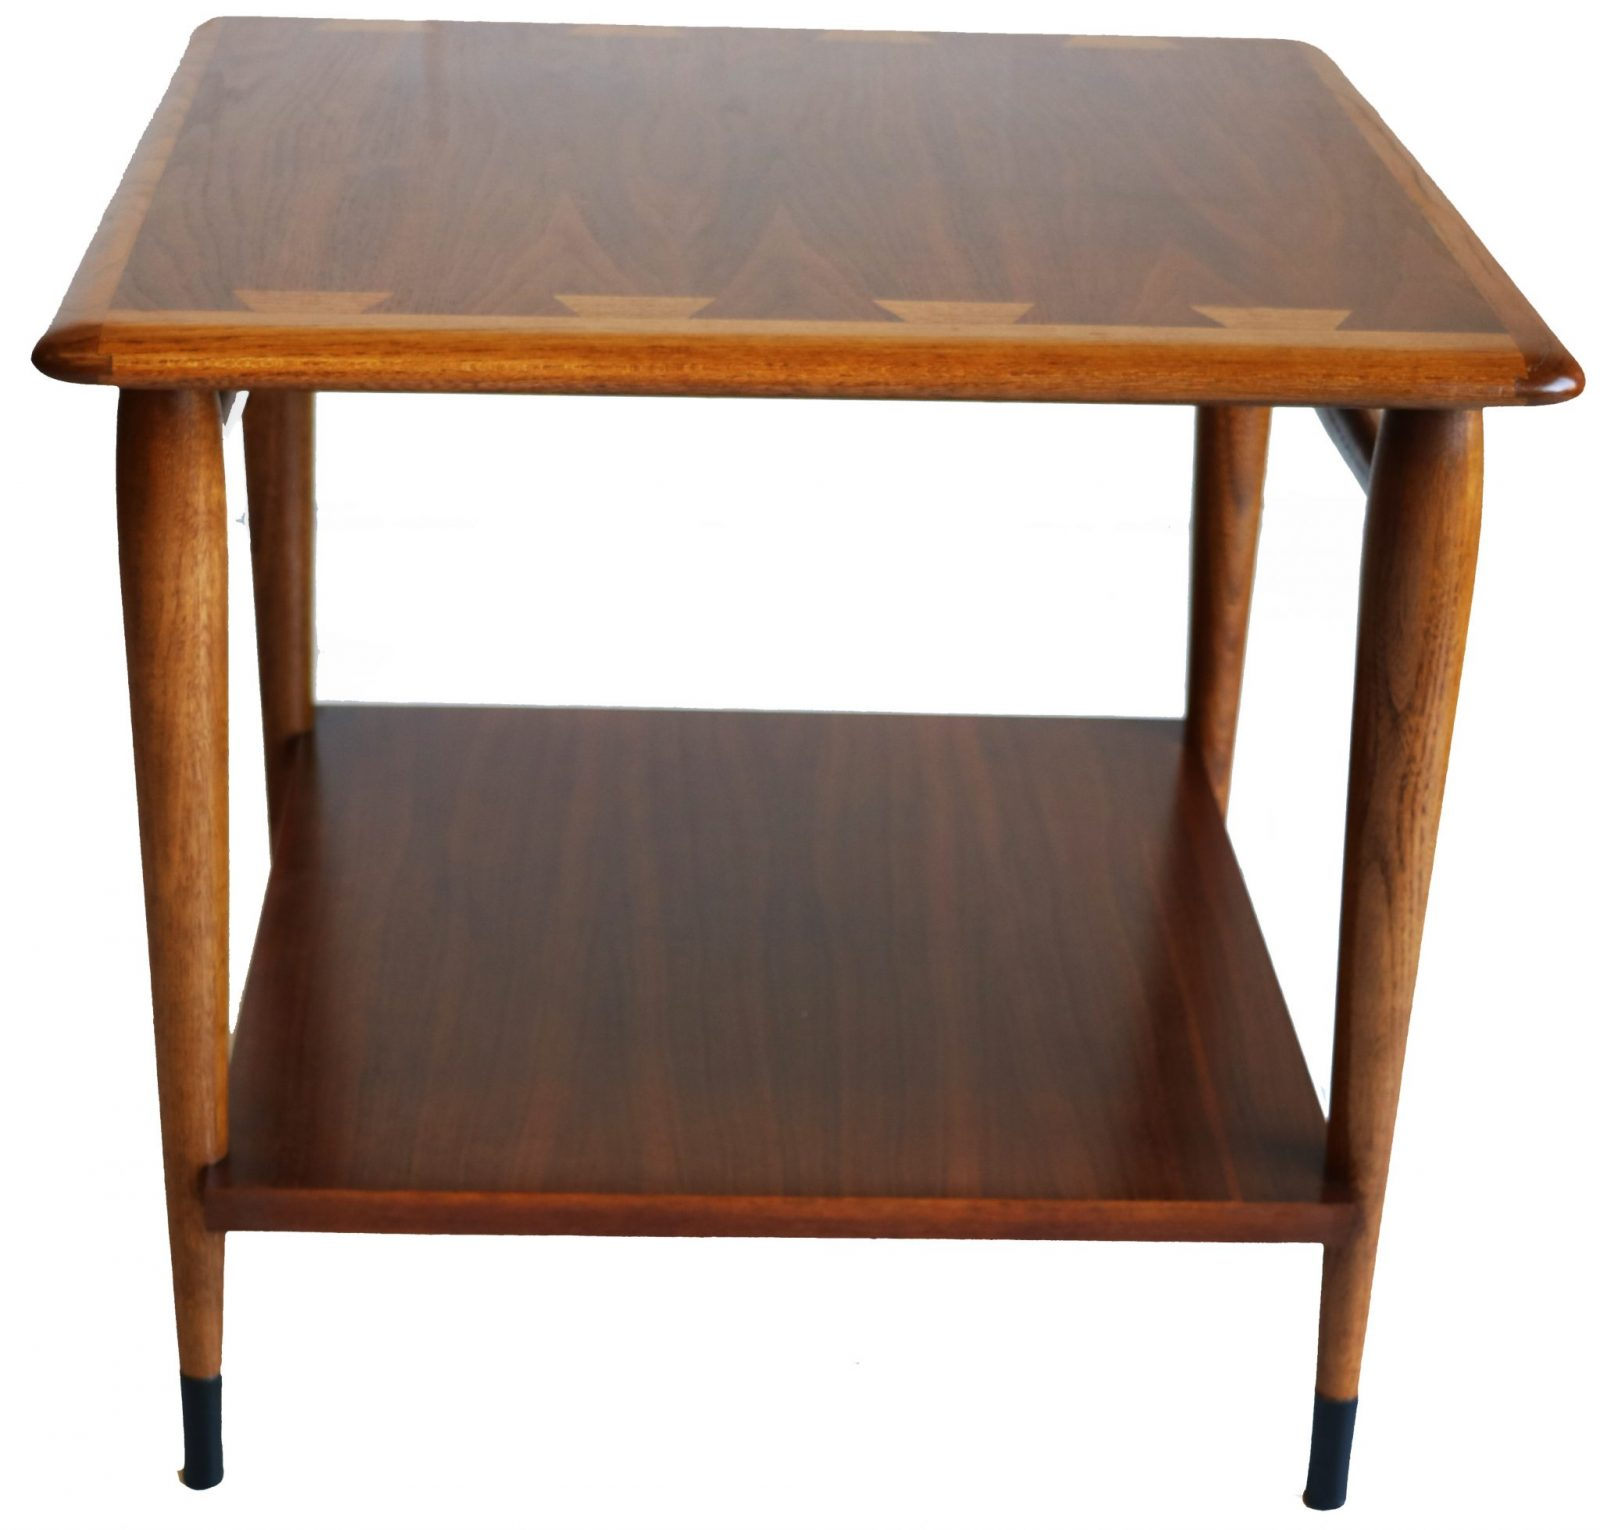 Small Mid Century Modern End Tables: Mid-Century Modern End Table